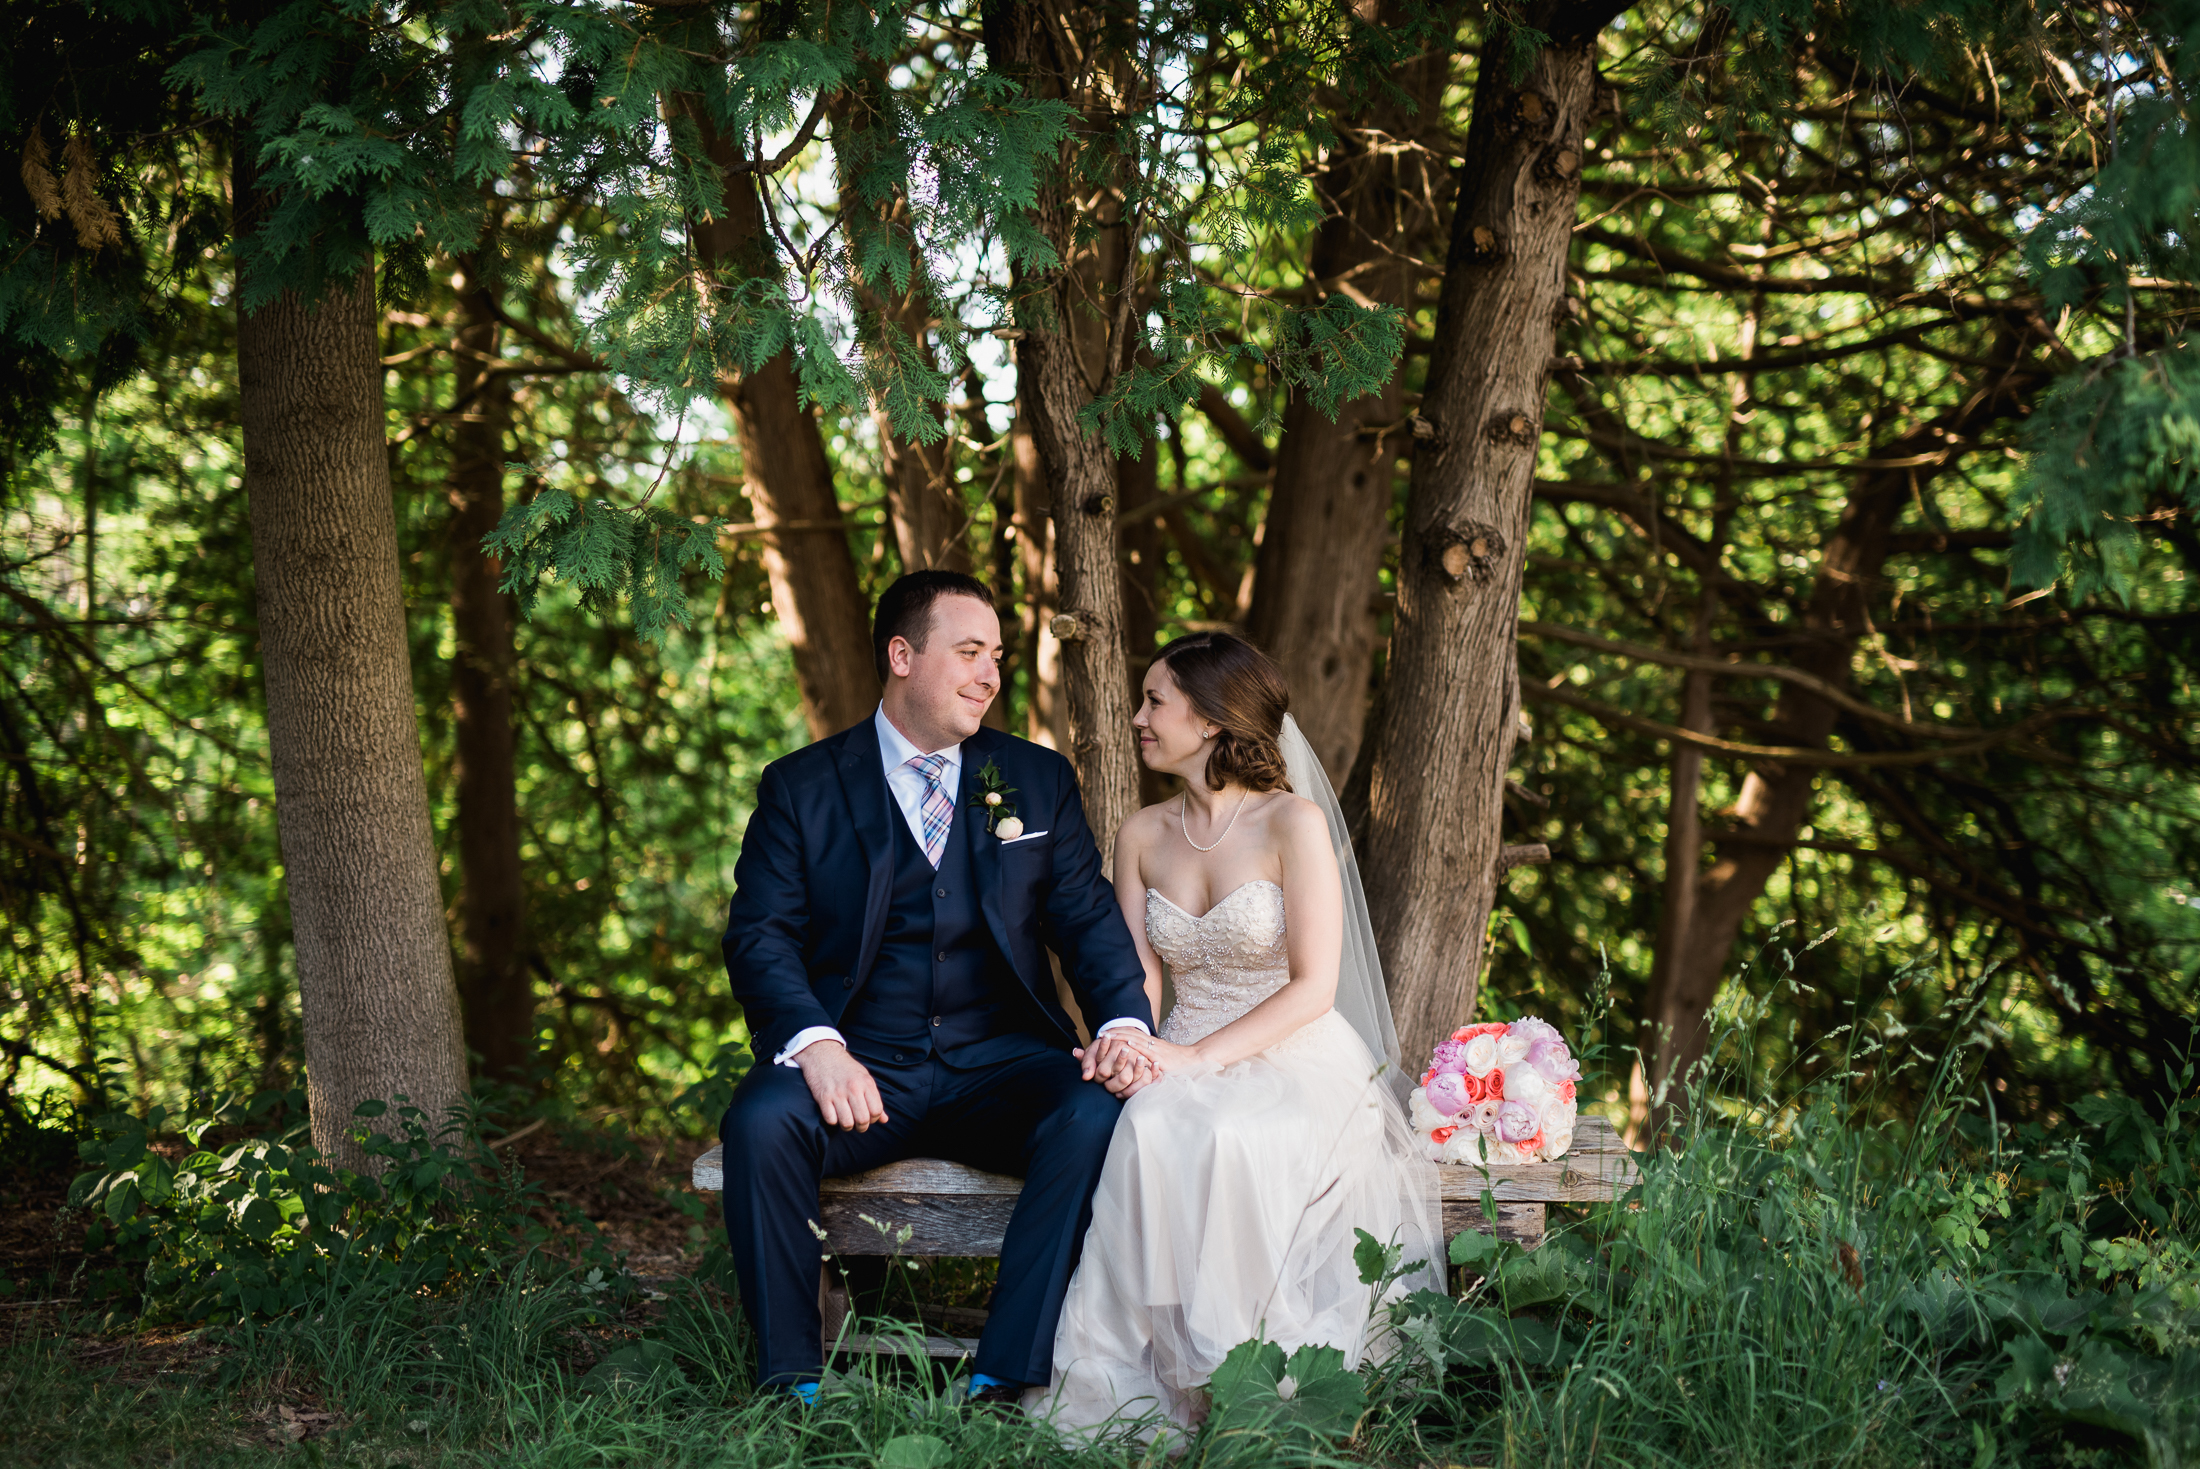 pickering_lakehouse_wedding_durham_region157